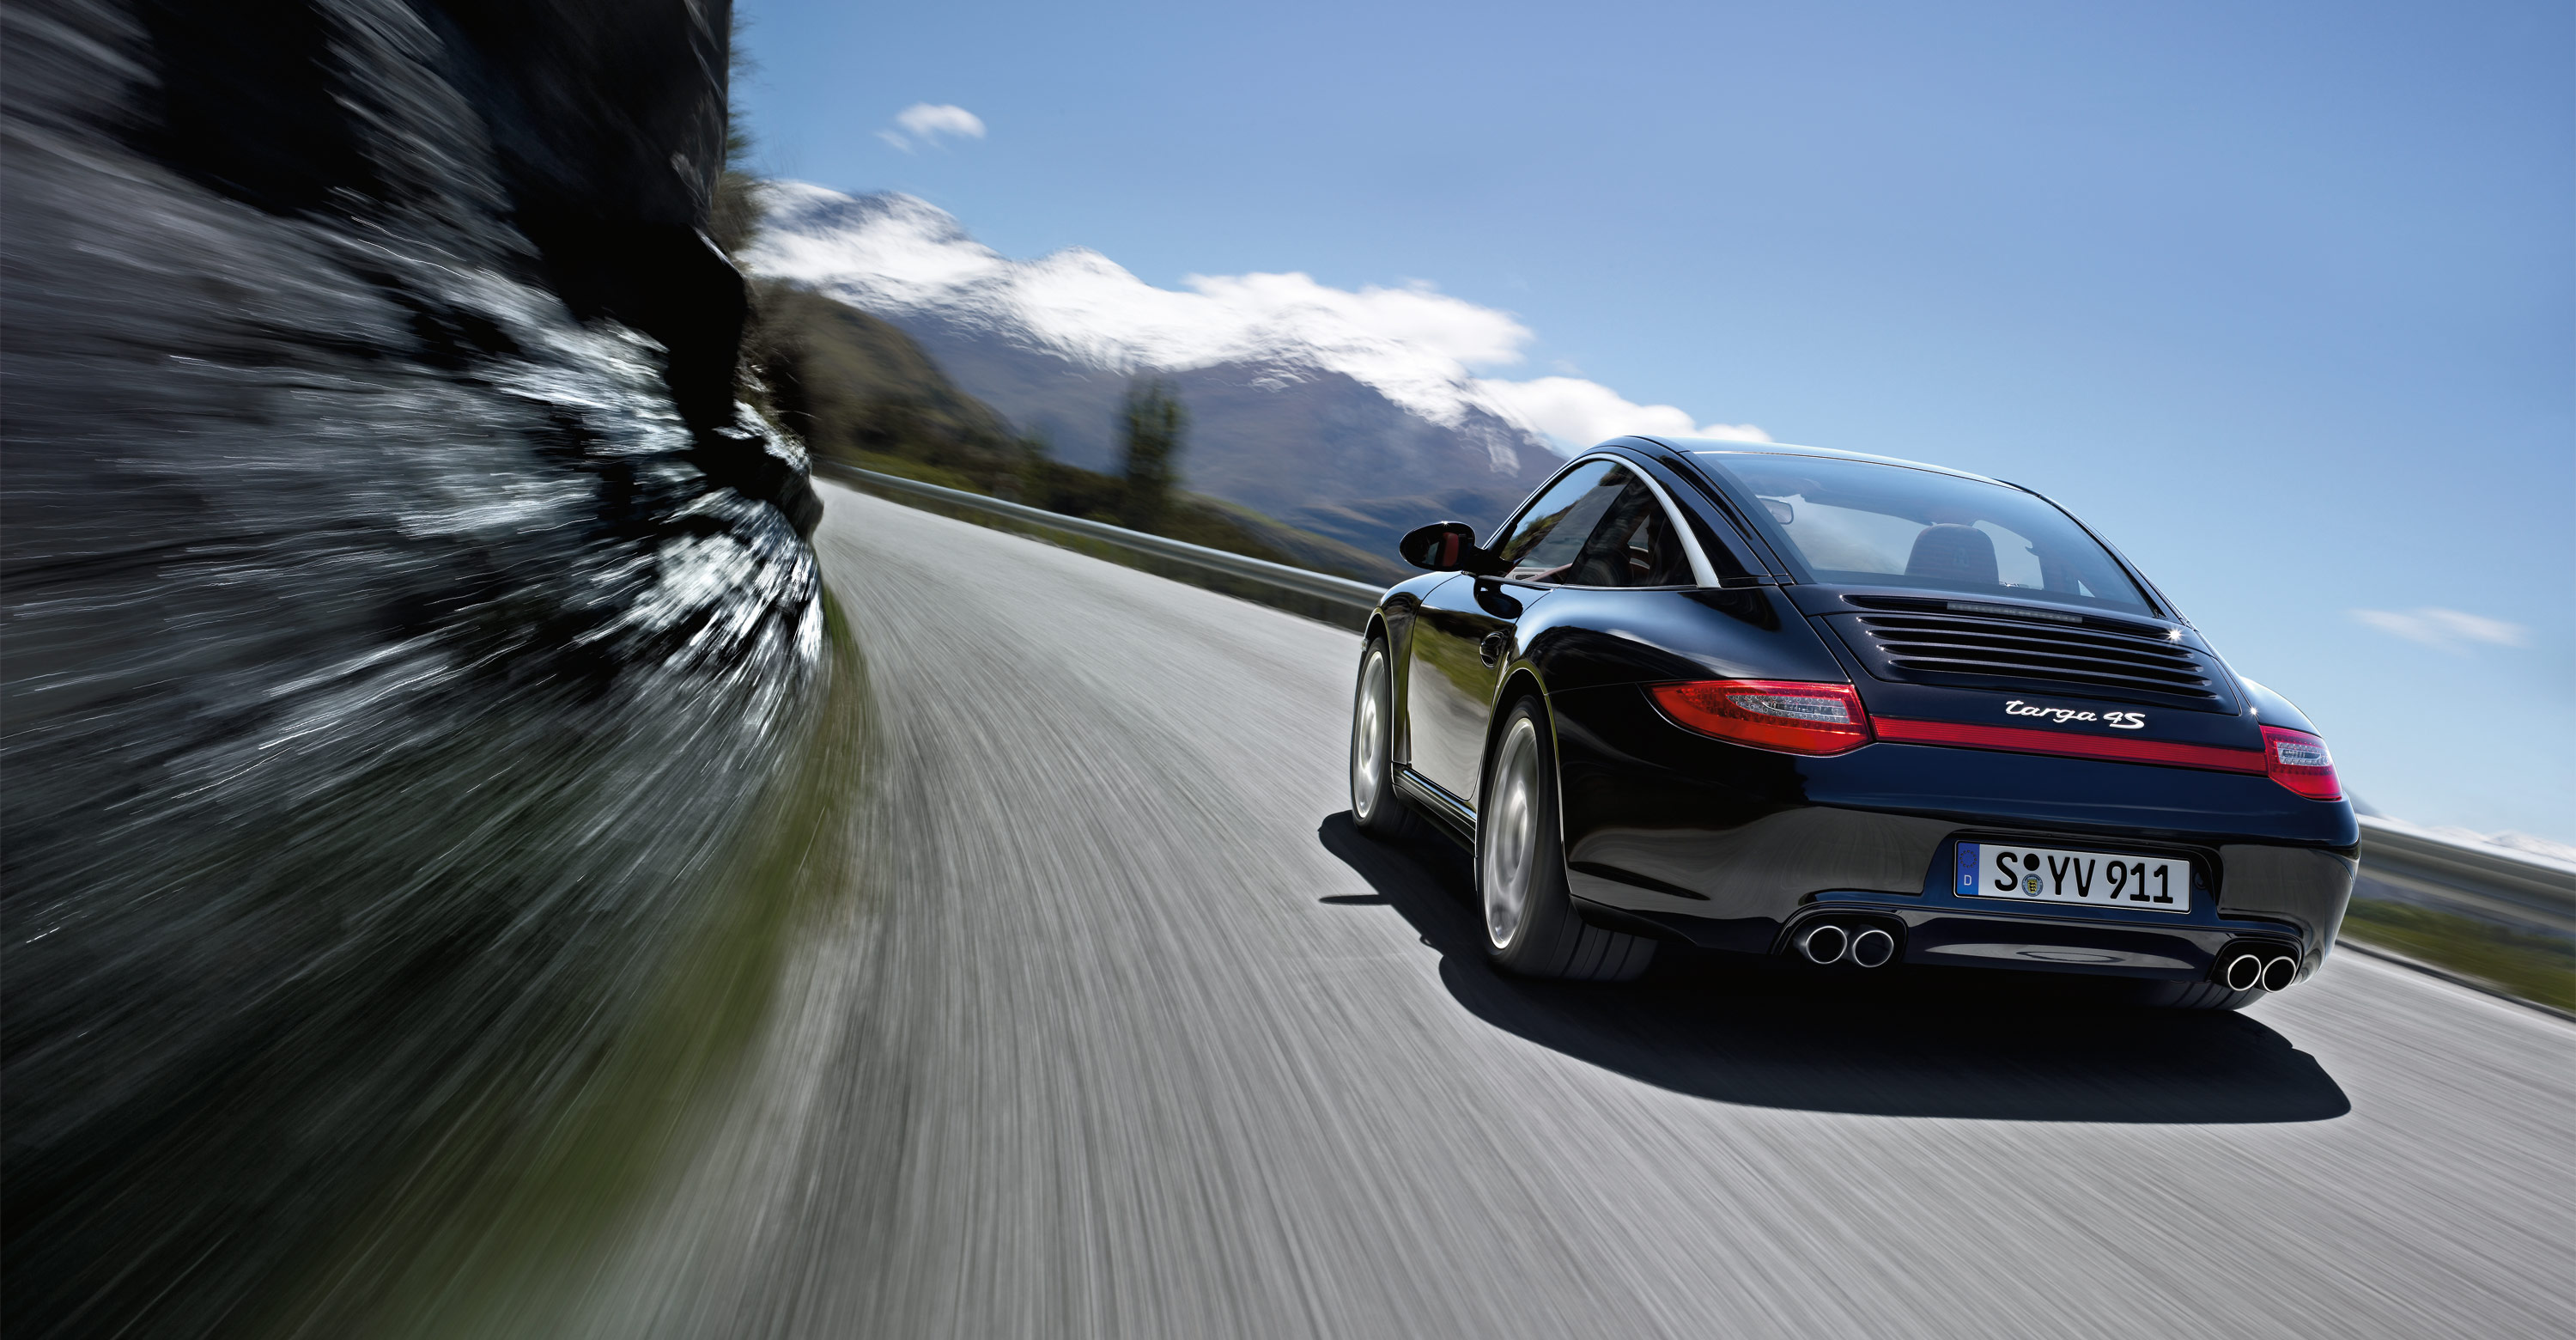 911 Targa 4s >> 2011 Black Porsche 911 Targa 4S wallpapers